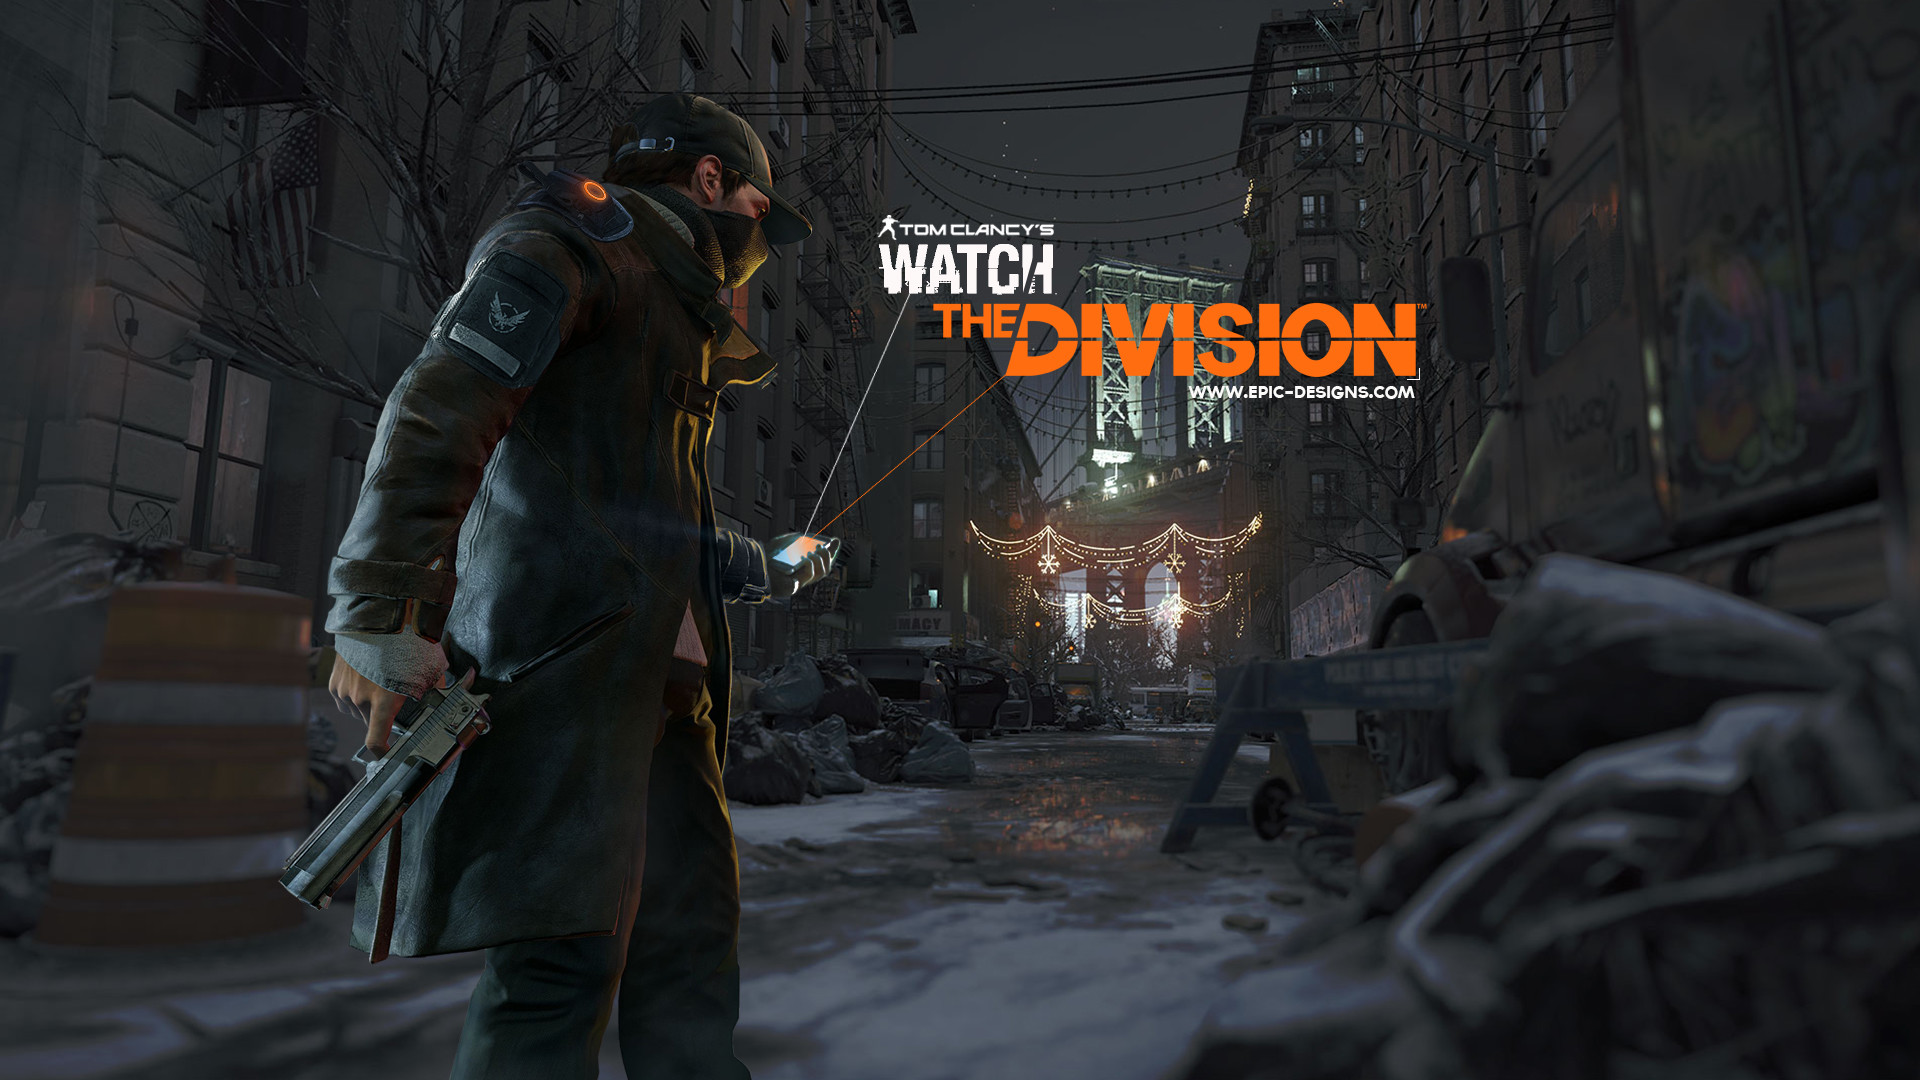 Watch the division wallpaper by EpicDesignsNL Watch the division wallpaper  by EpicDesignsNL